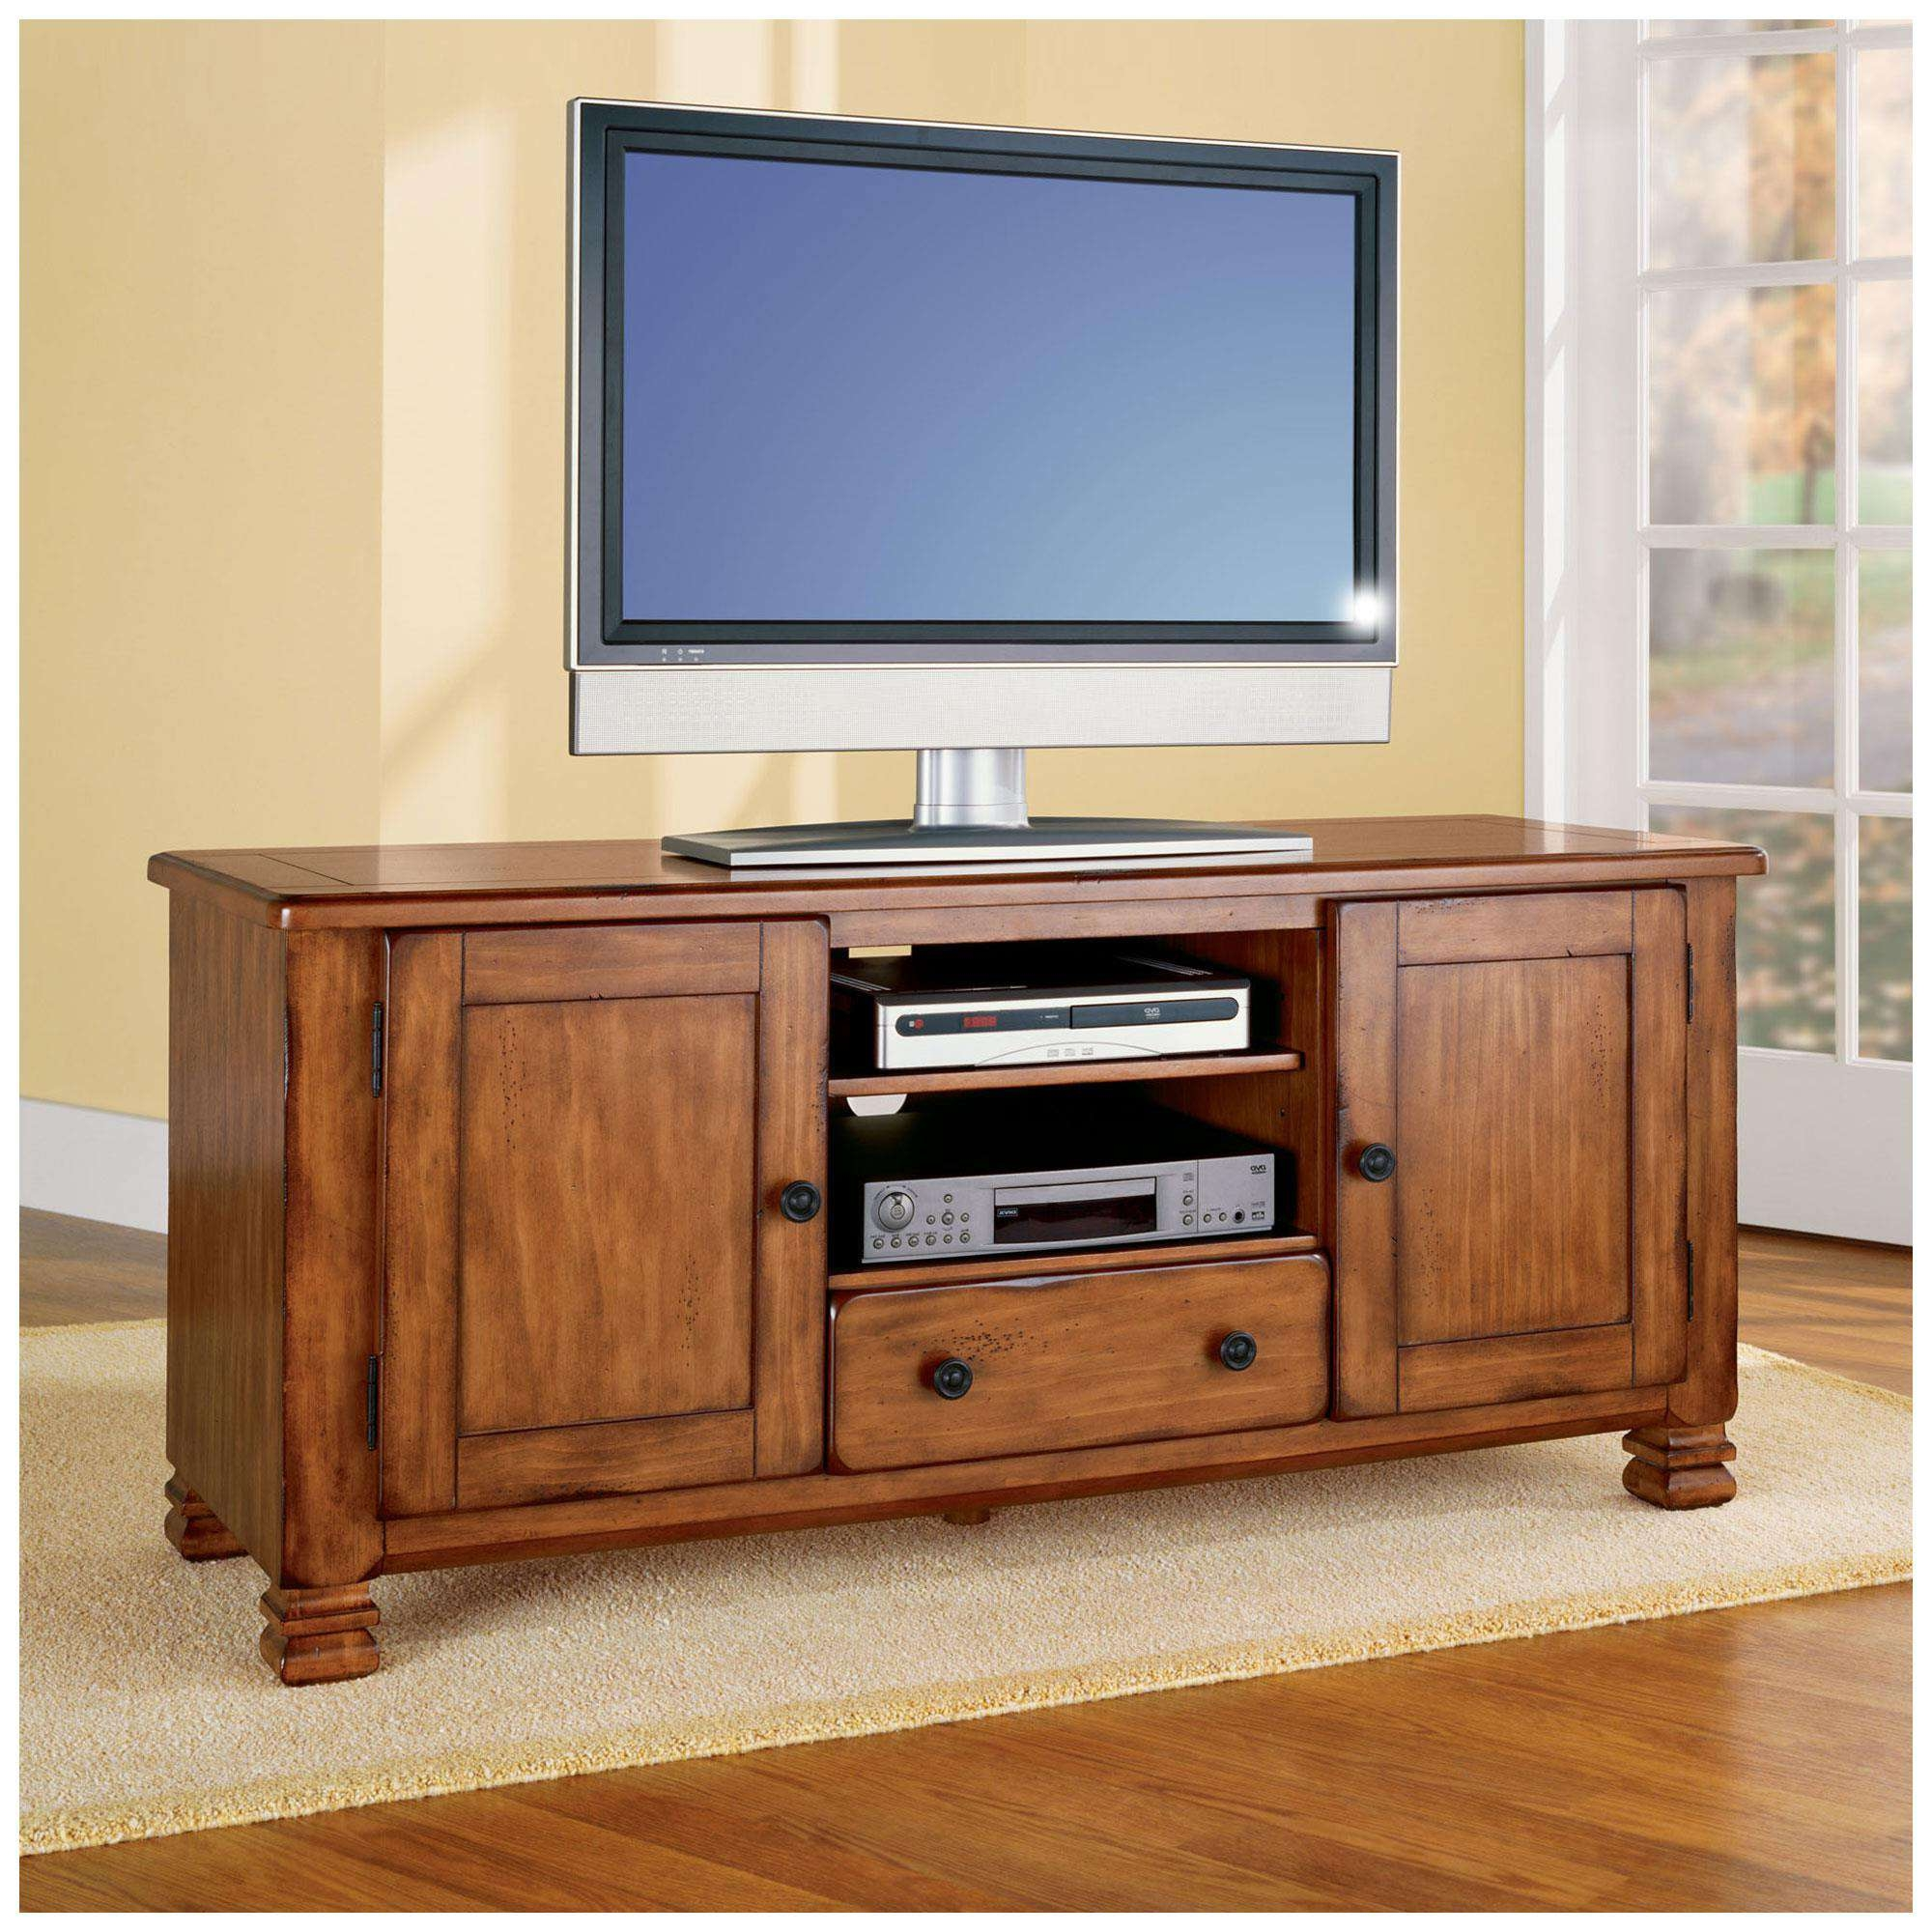 Open Tv Stands Uncategorized Used File Cabinets For Sale Best Pertaining To Wooden Tv Stands For 50 Inch Tv (Gallery 5 of 15)